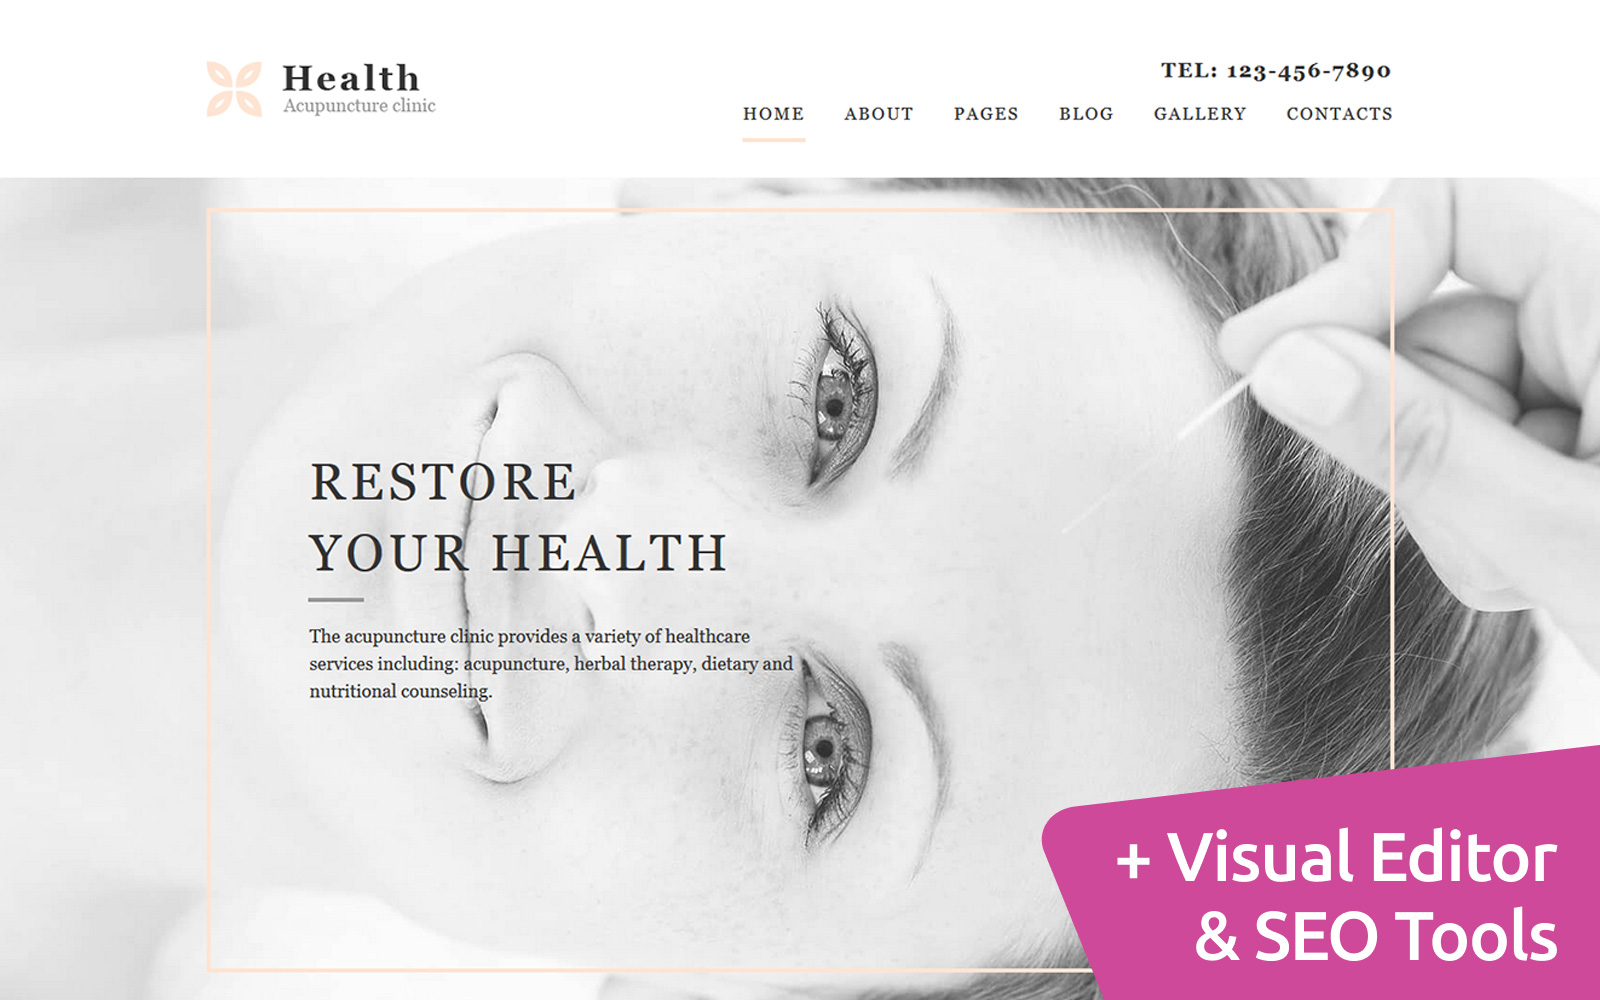 Health - Acupuncture Clinic Templates Moto CMS 3 №117728